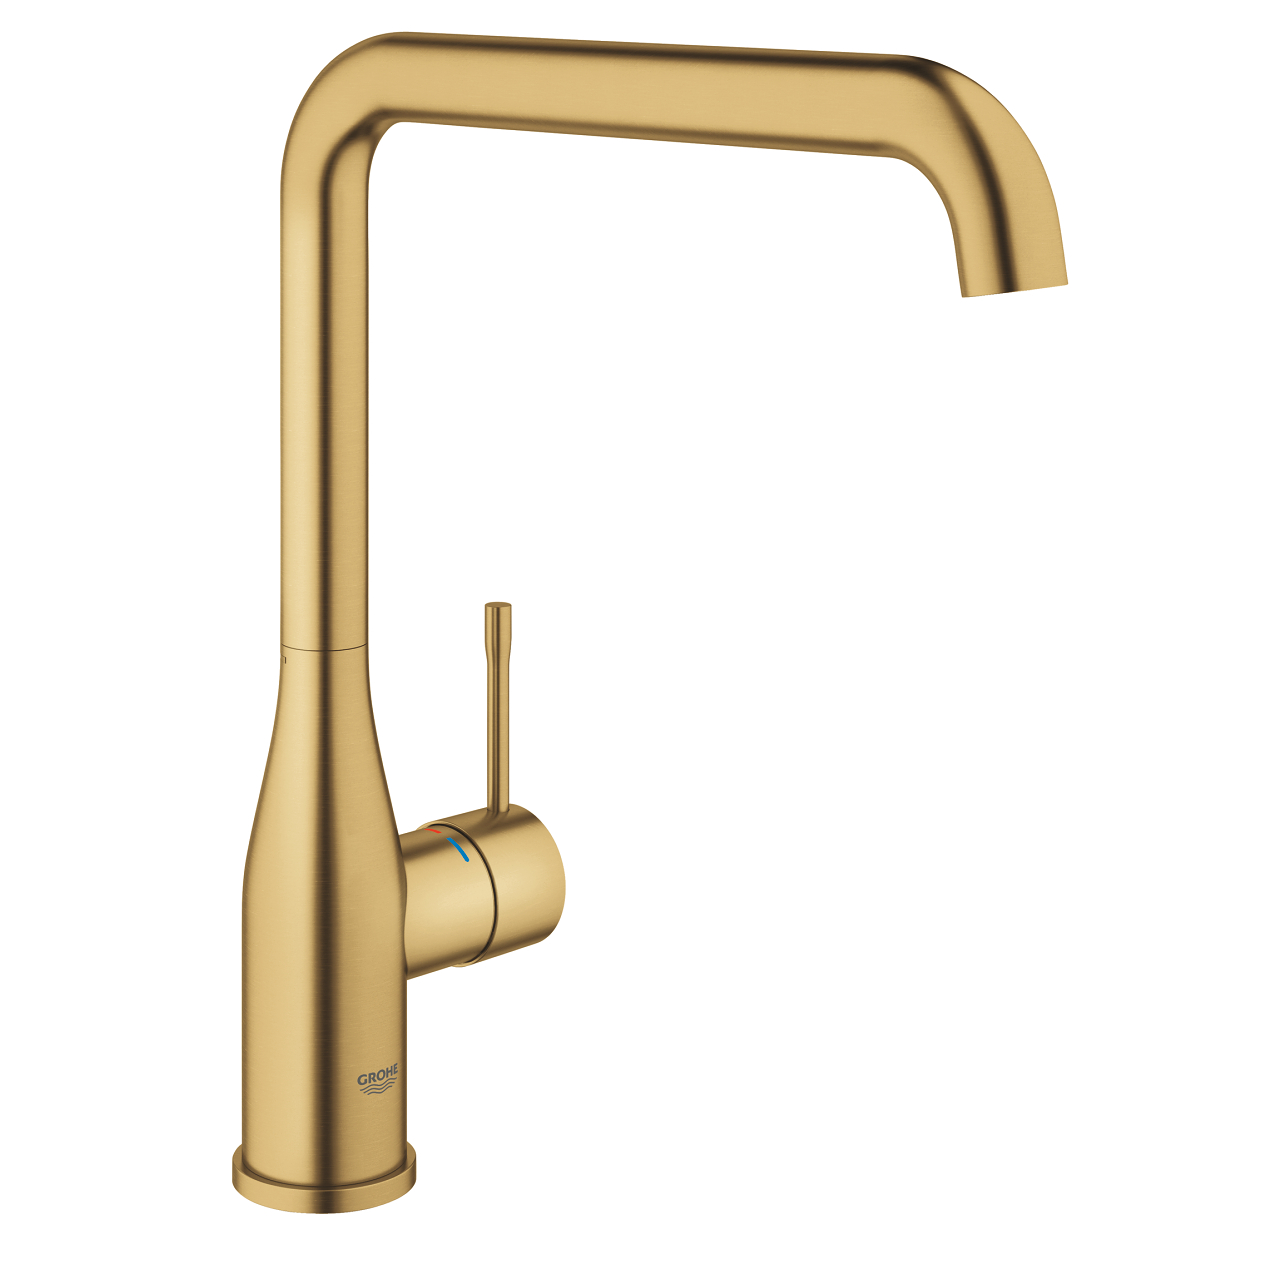 Grohe 30269gn0 Kuchenarmatur Essence Farbe Brushed Cool Sunrise Gold